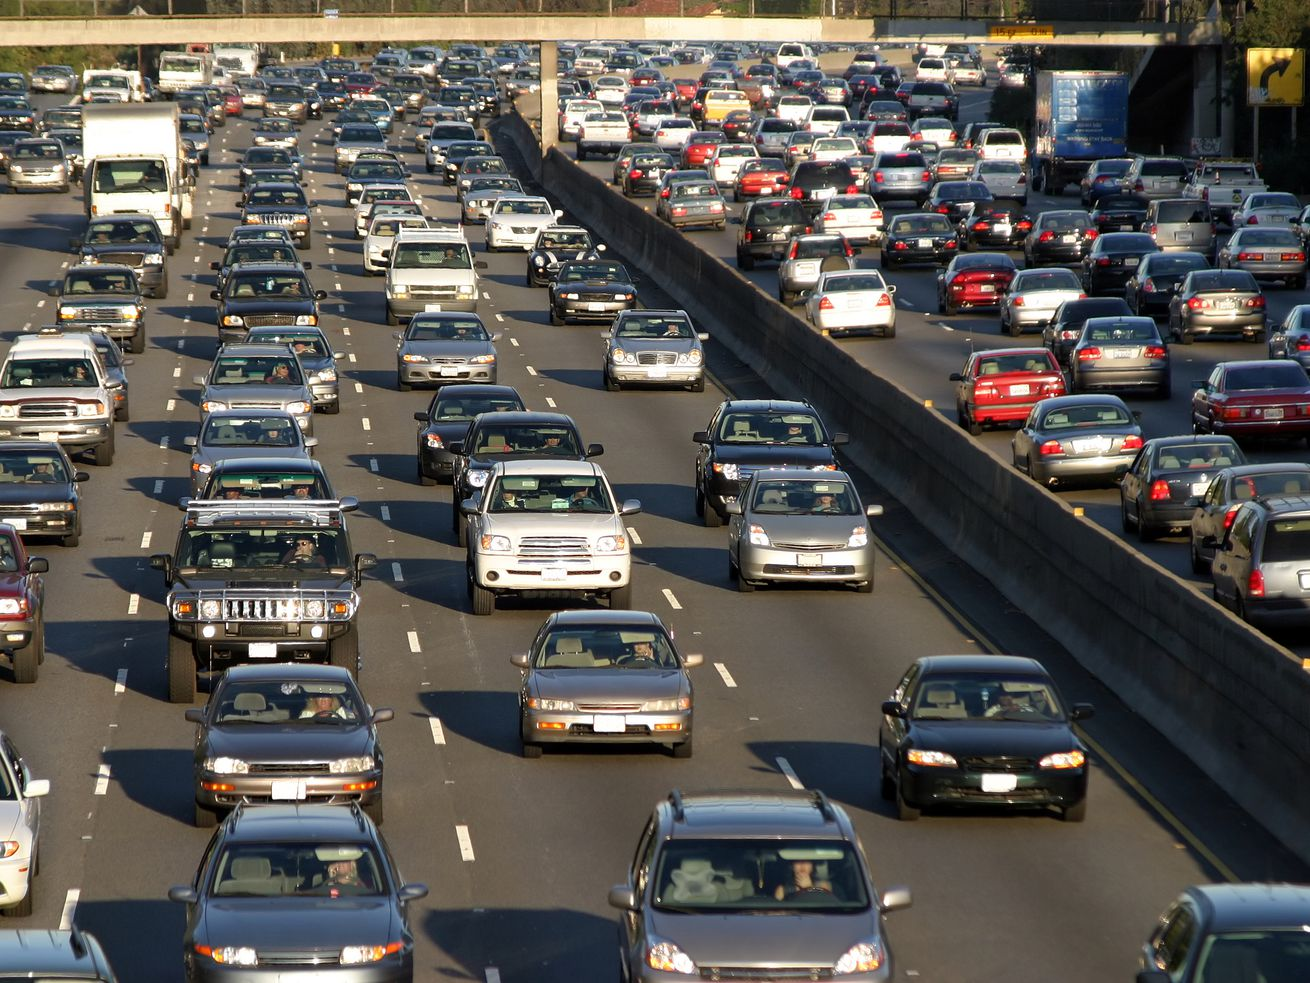 If you're traveling on Thursday, brace yourself for the brunt of the gridlock.